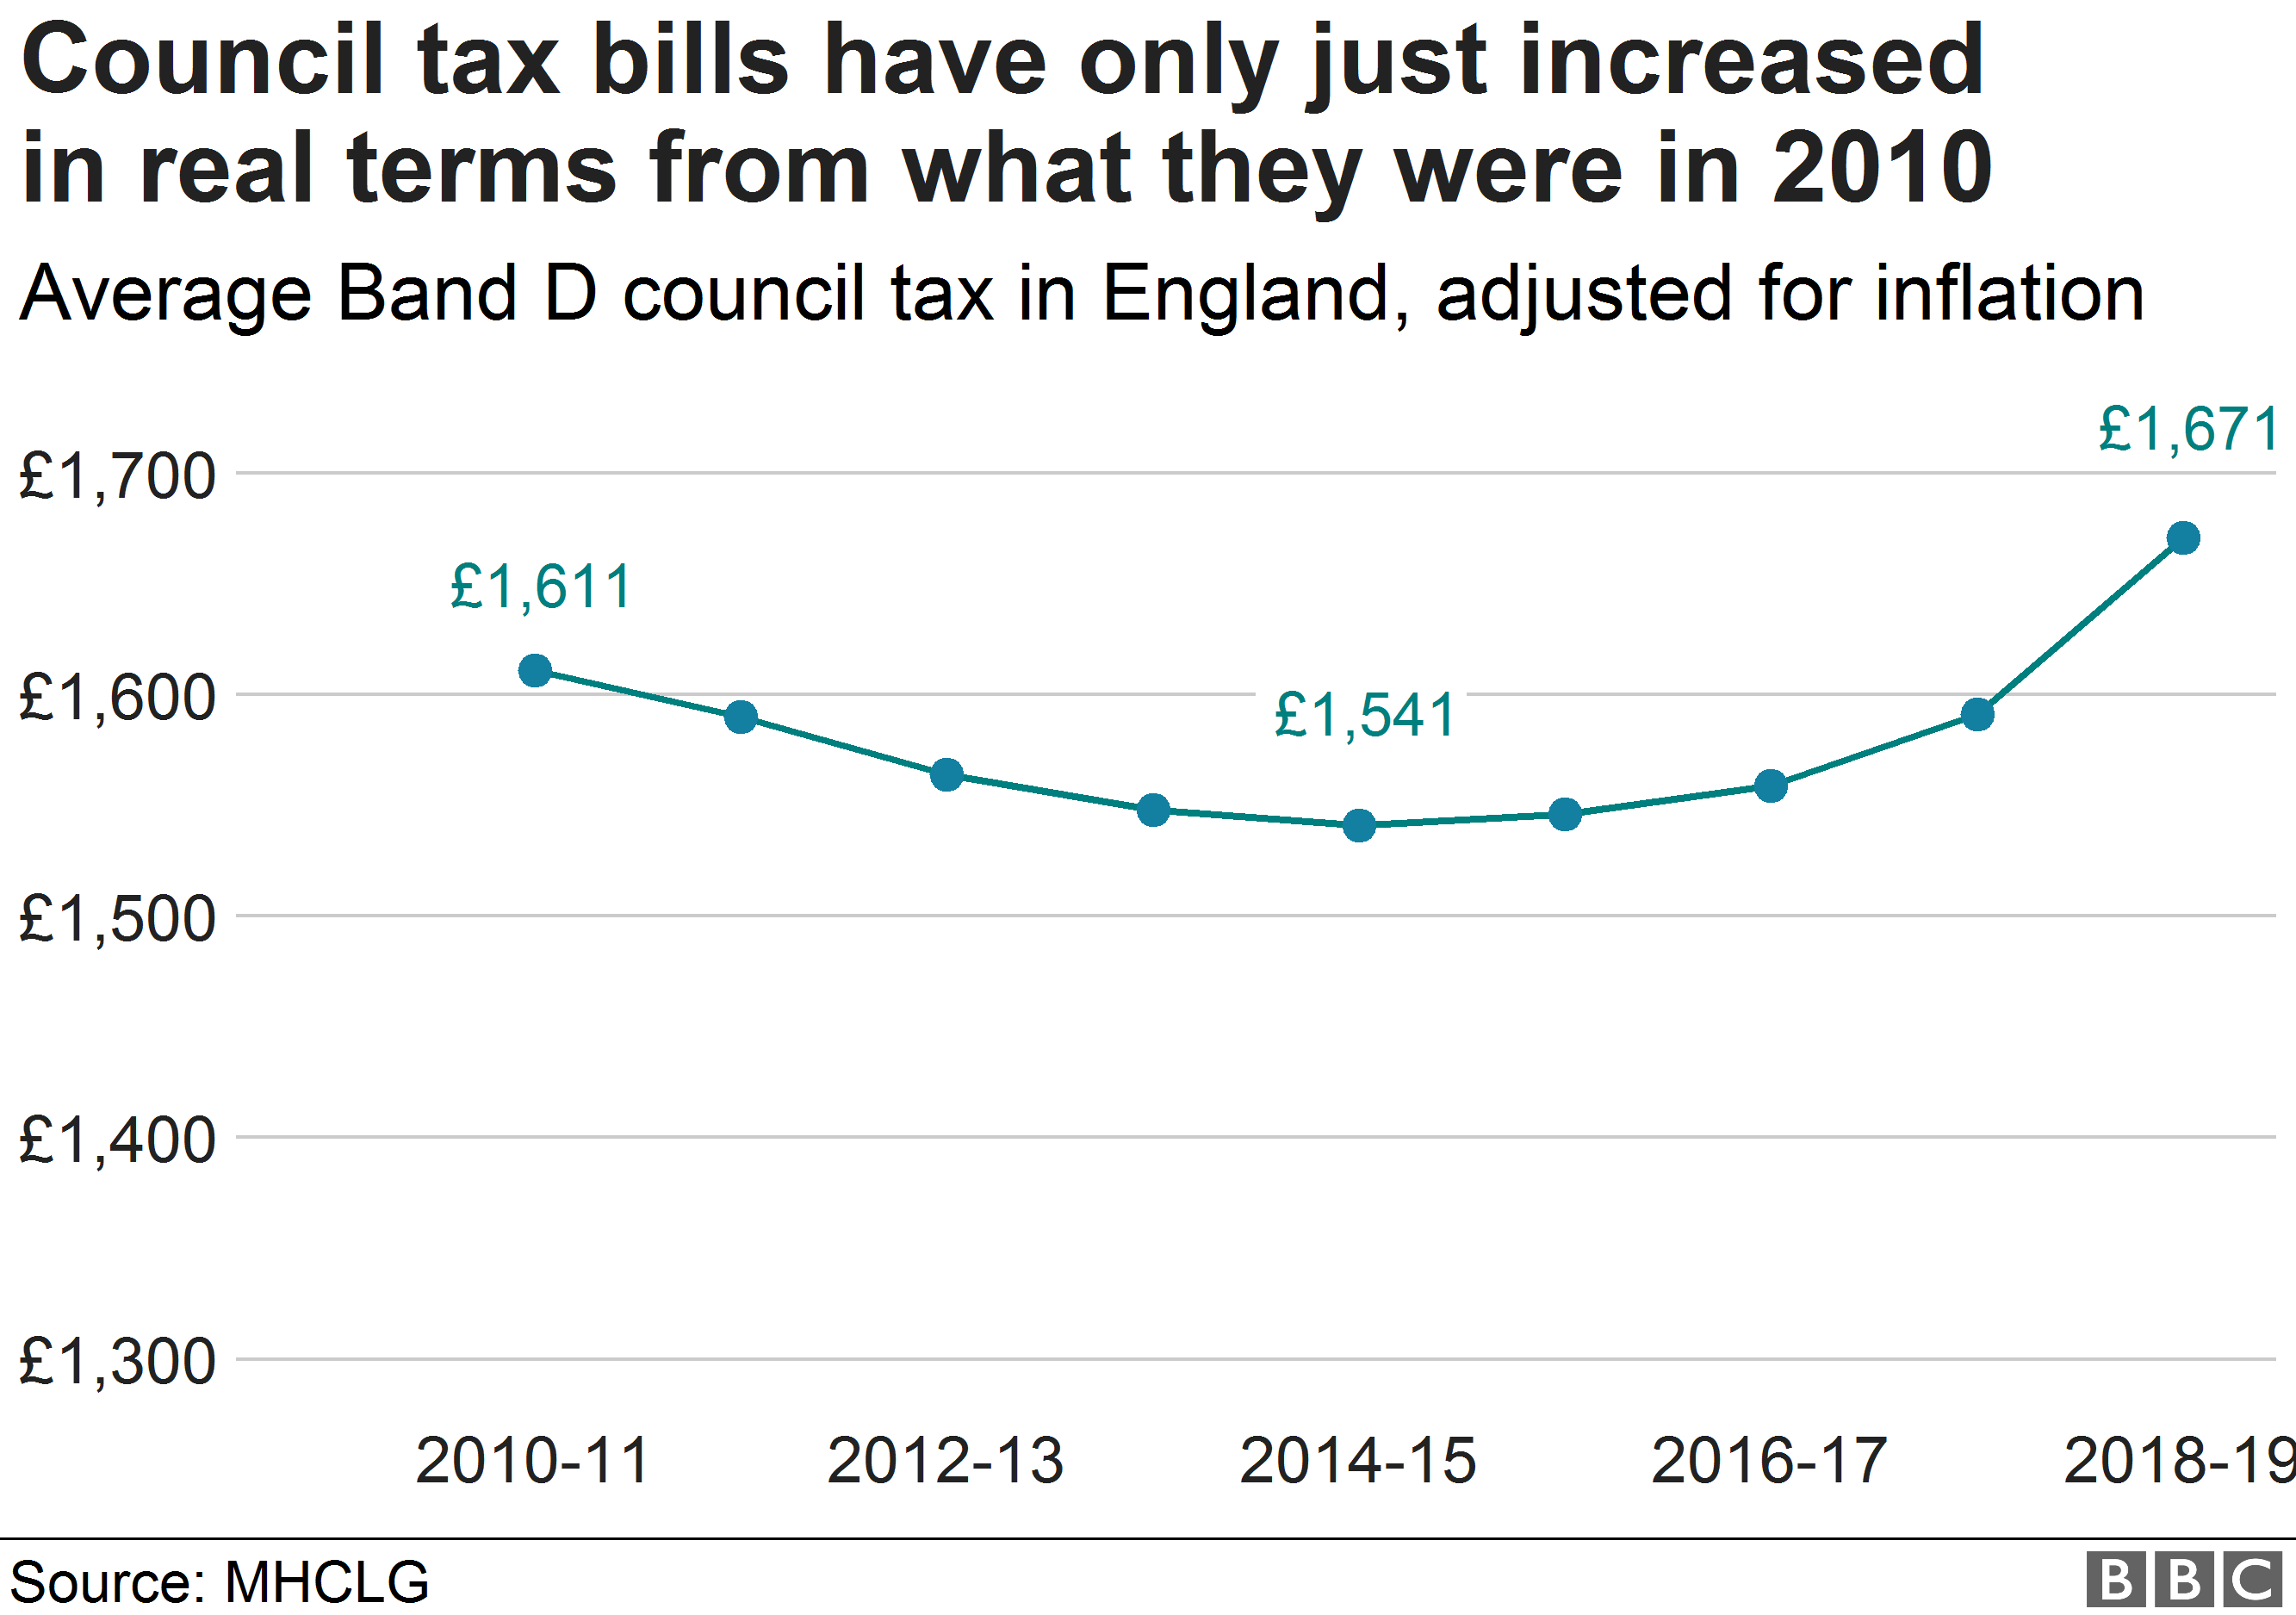 Chart showing change in council tax band D bills from 2019